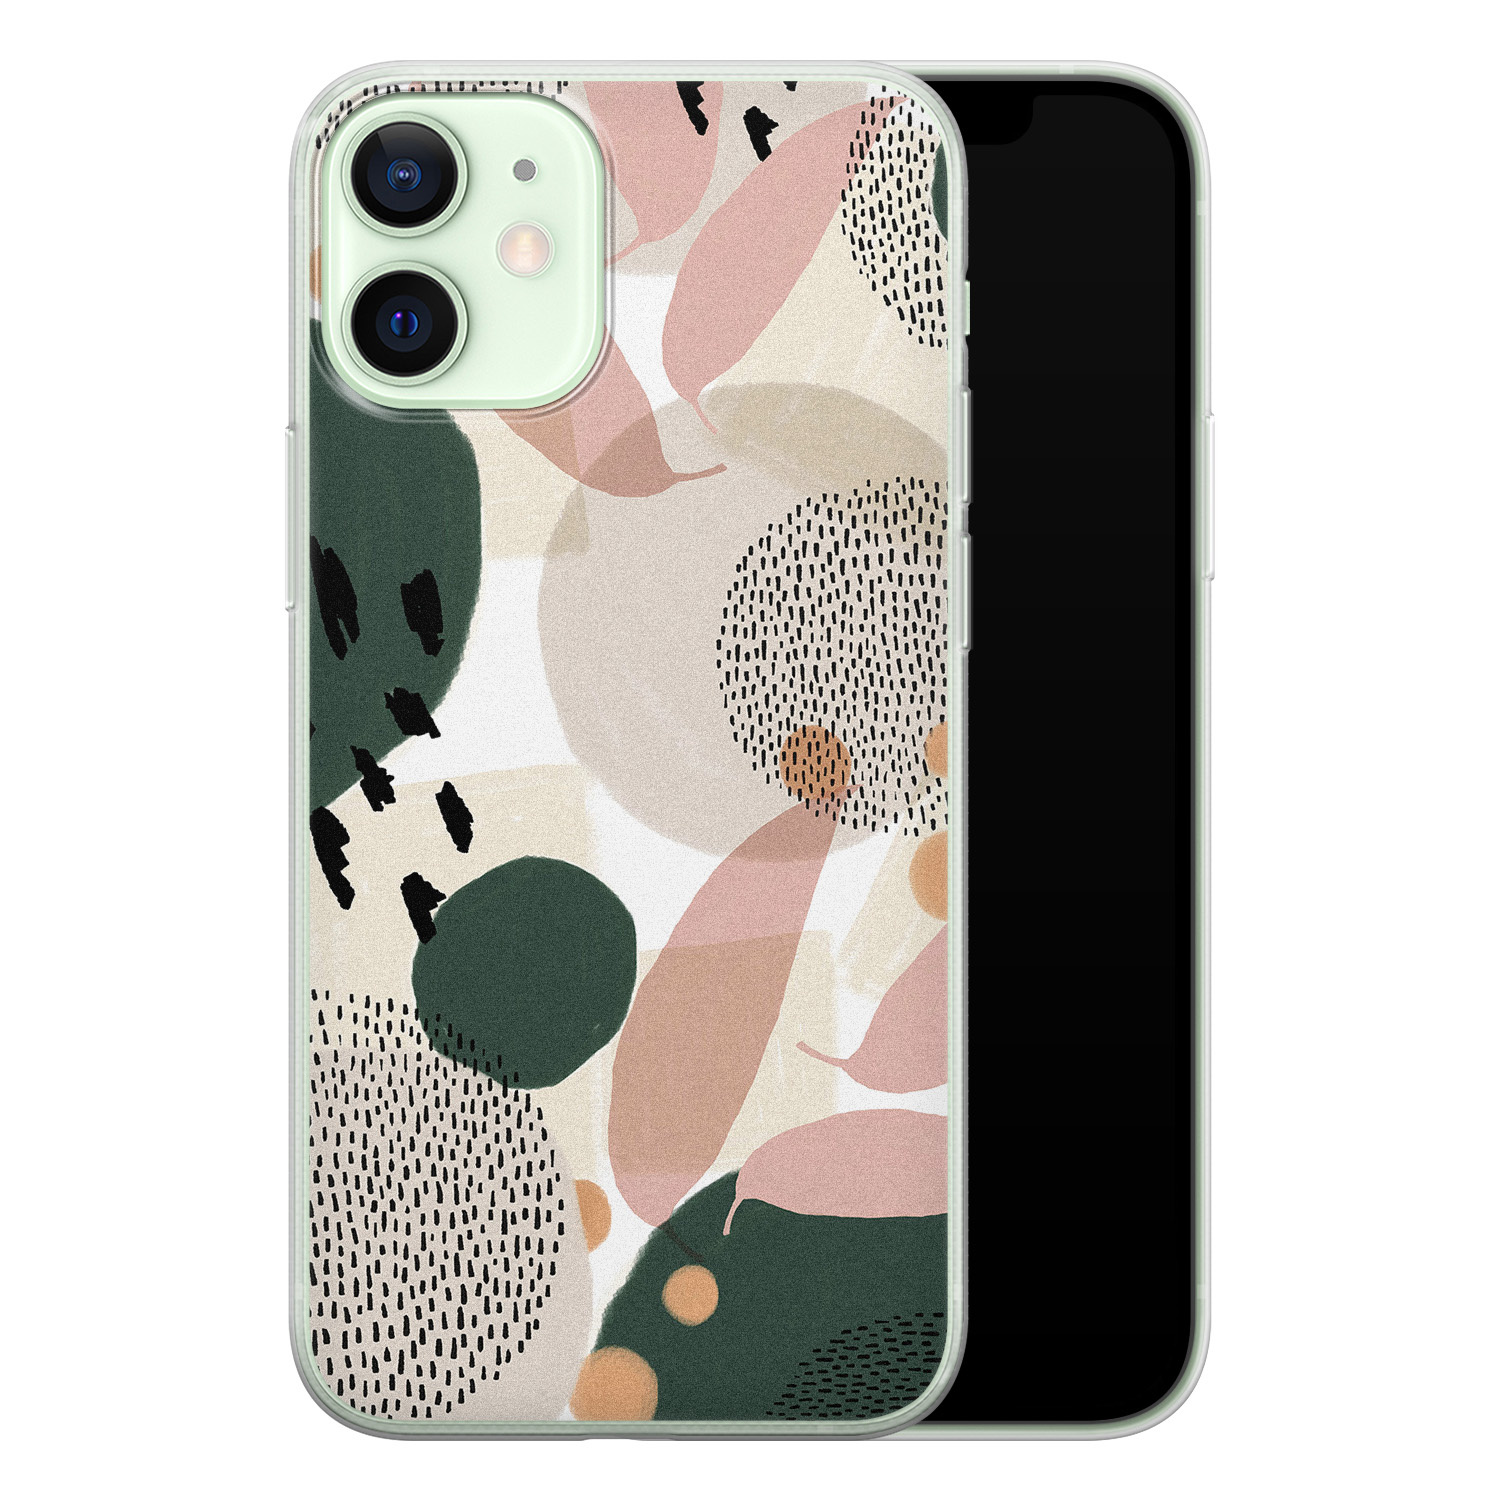 iPhone 12 mini siliconen hoesje - Abstract print